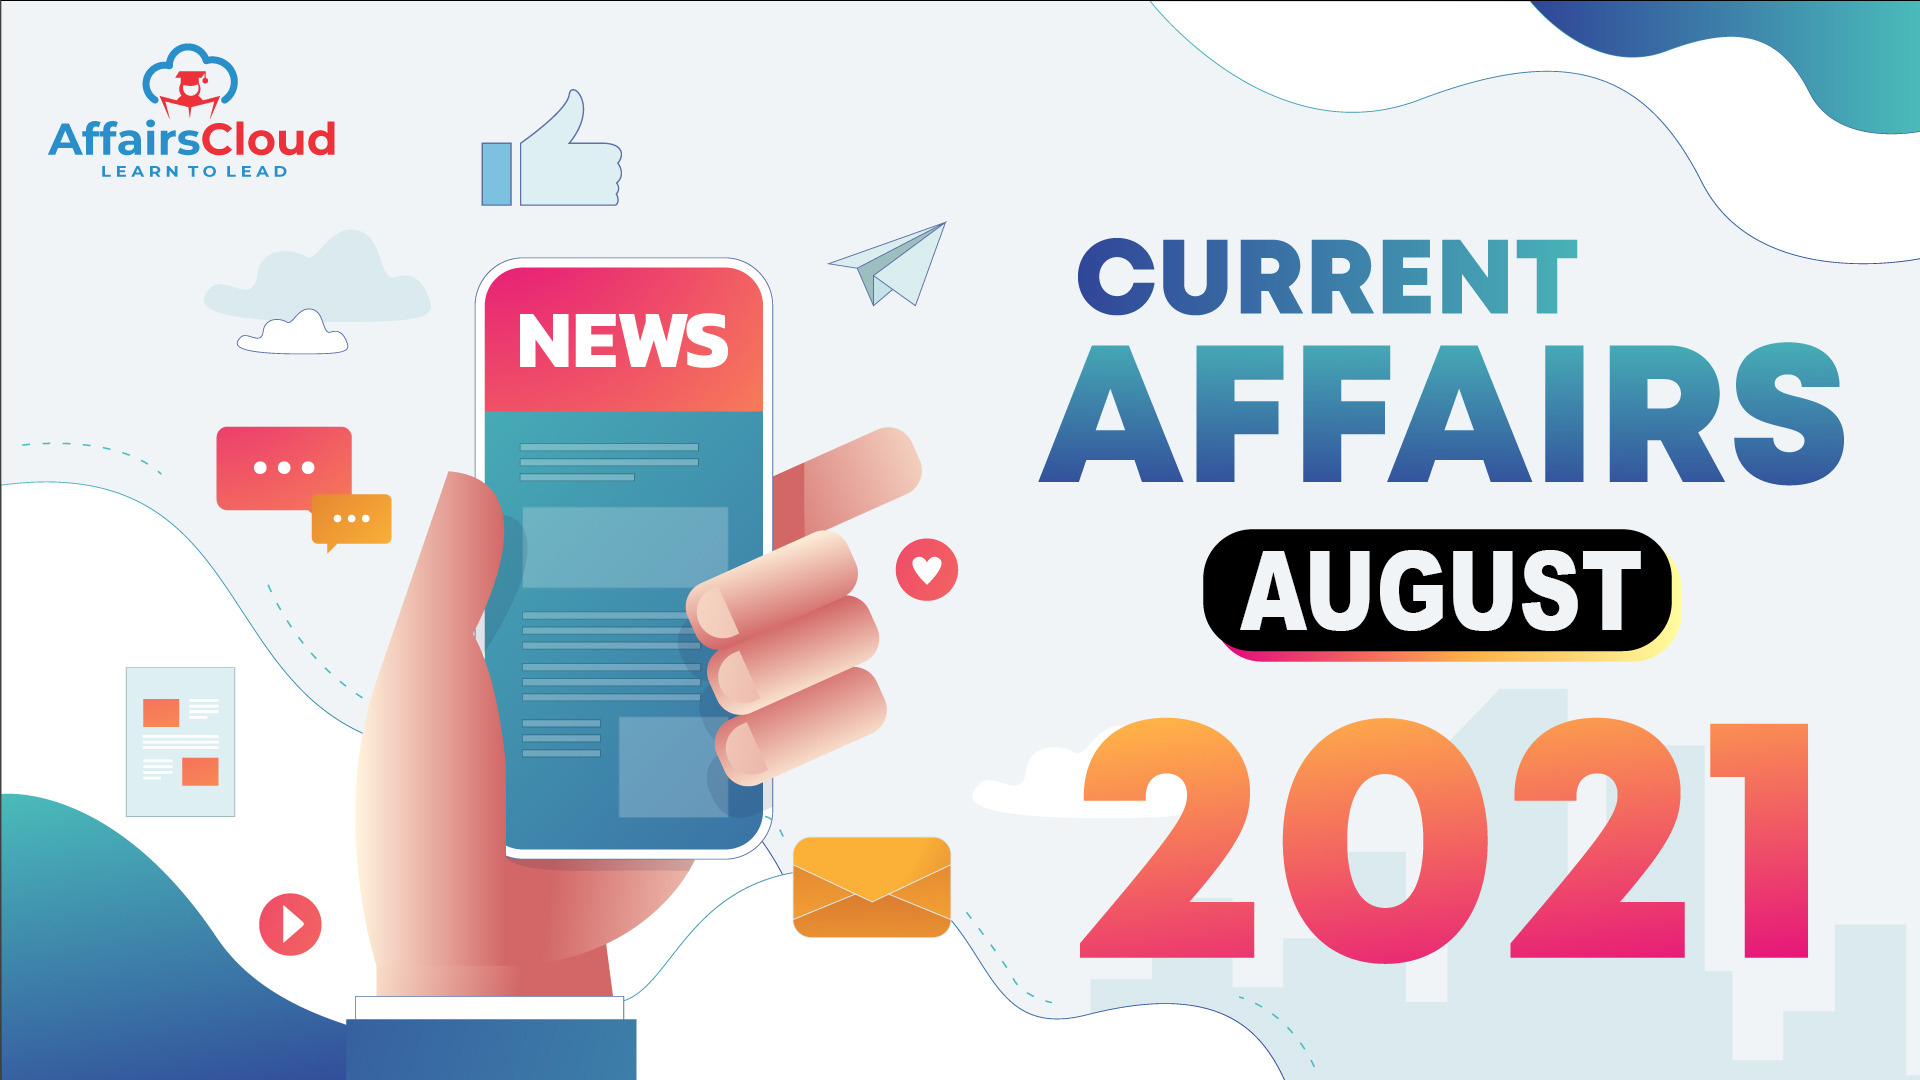 CURRENT-AFFAIRS-MONTHY August-2021